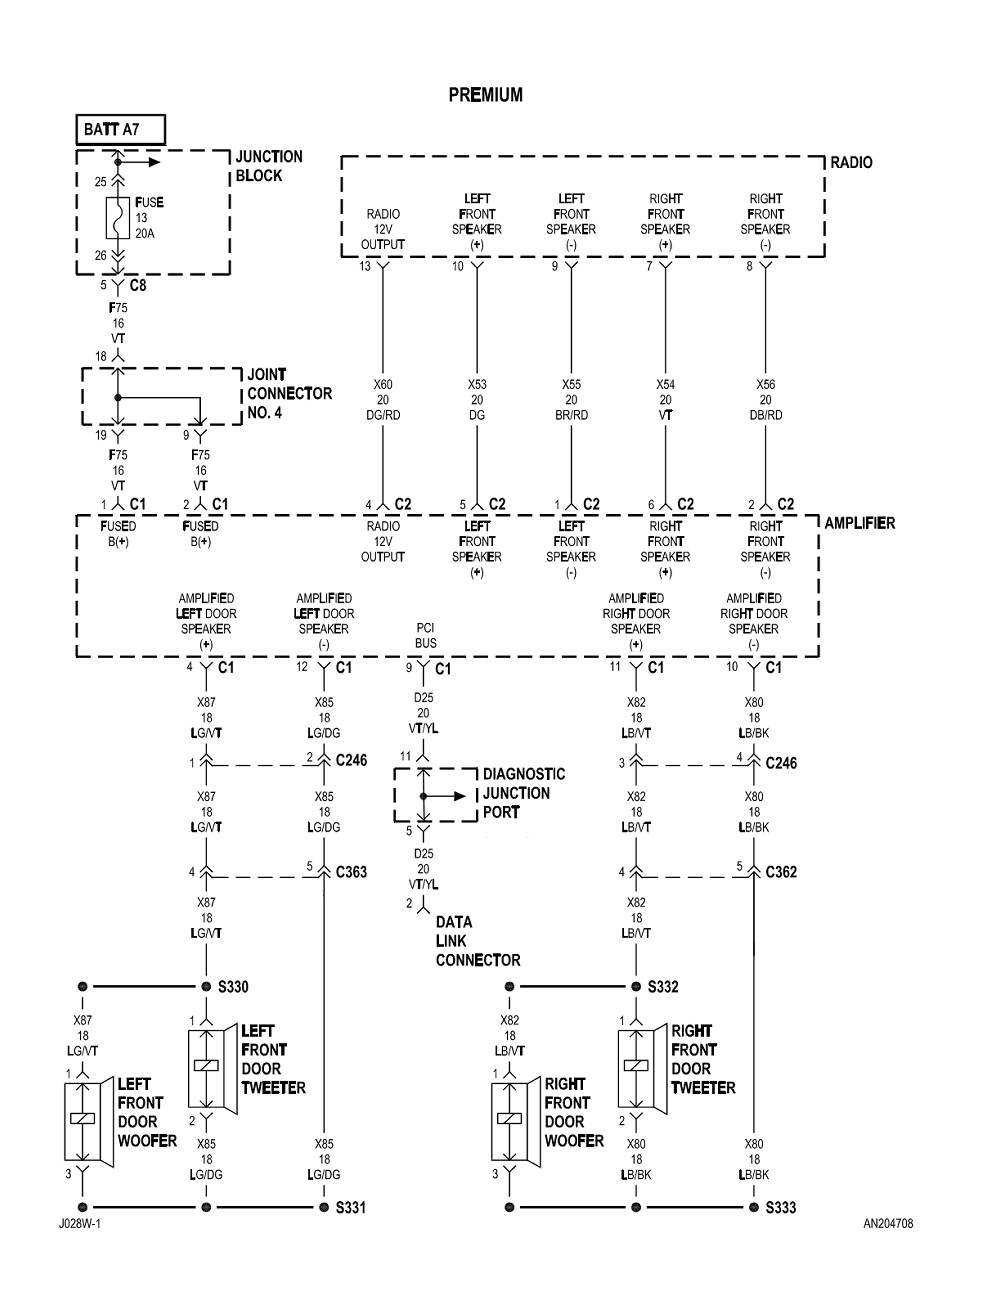 2002 dodge dakota radio wiring diagram Download-Category Wiring Diagram 11 Wiring Diagram 2000 Dodge Dakota Radio Wiring Diagram Unique 2000 14-q